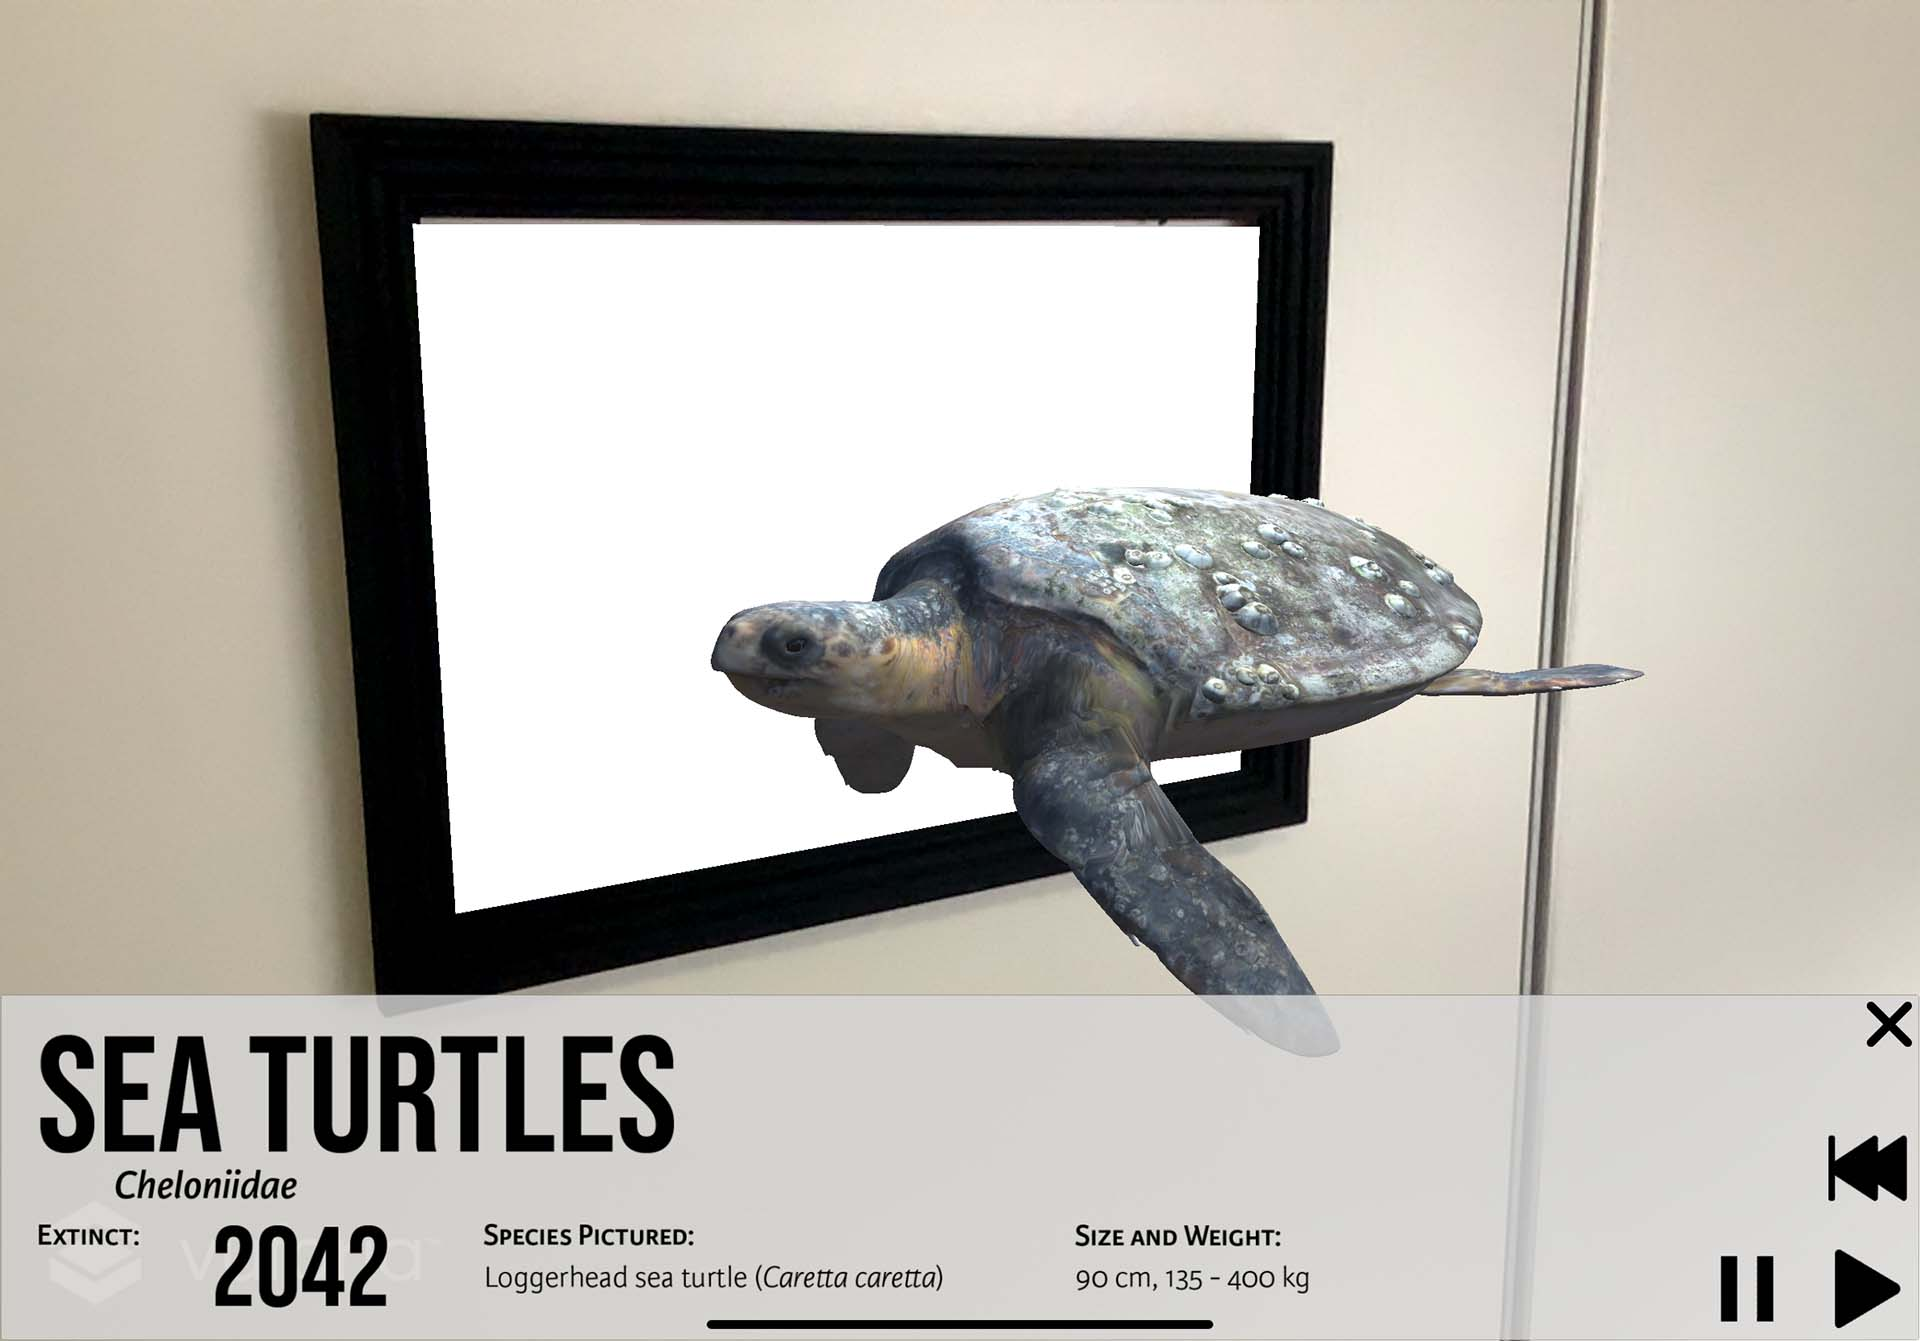 Augmented reality iPad app showing an animated sea turtle, detailing the species' extinction.